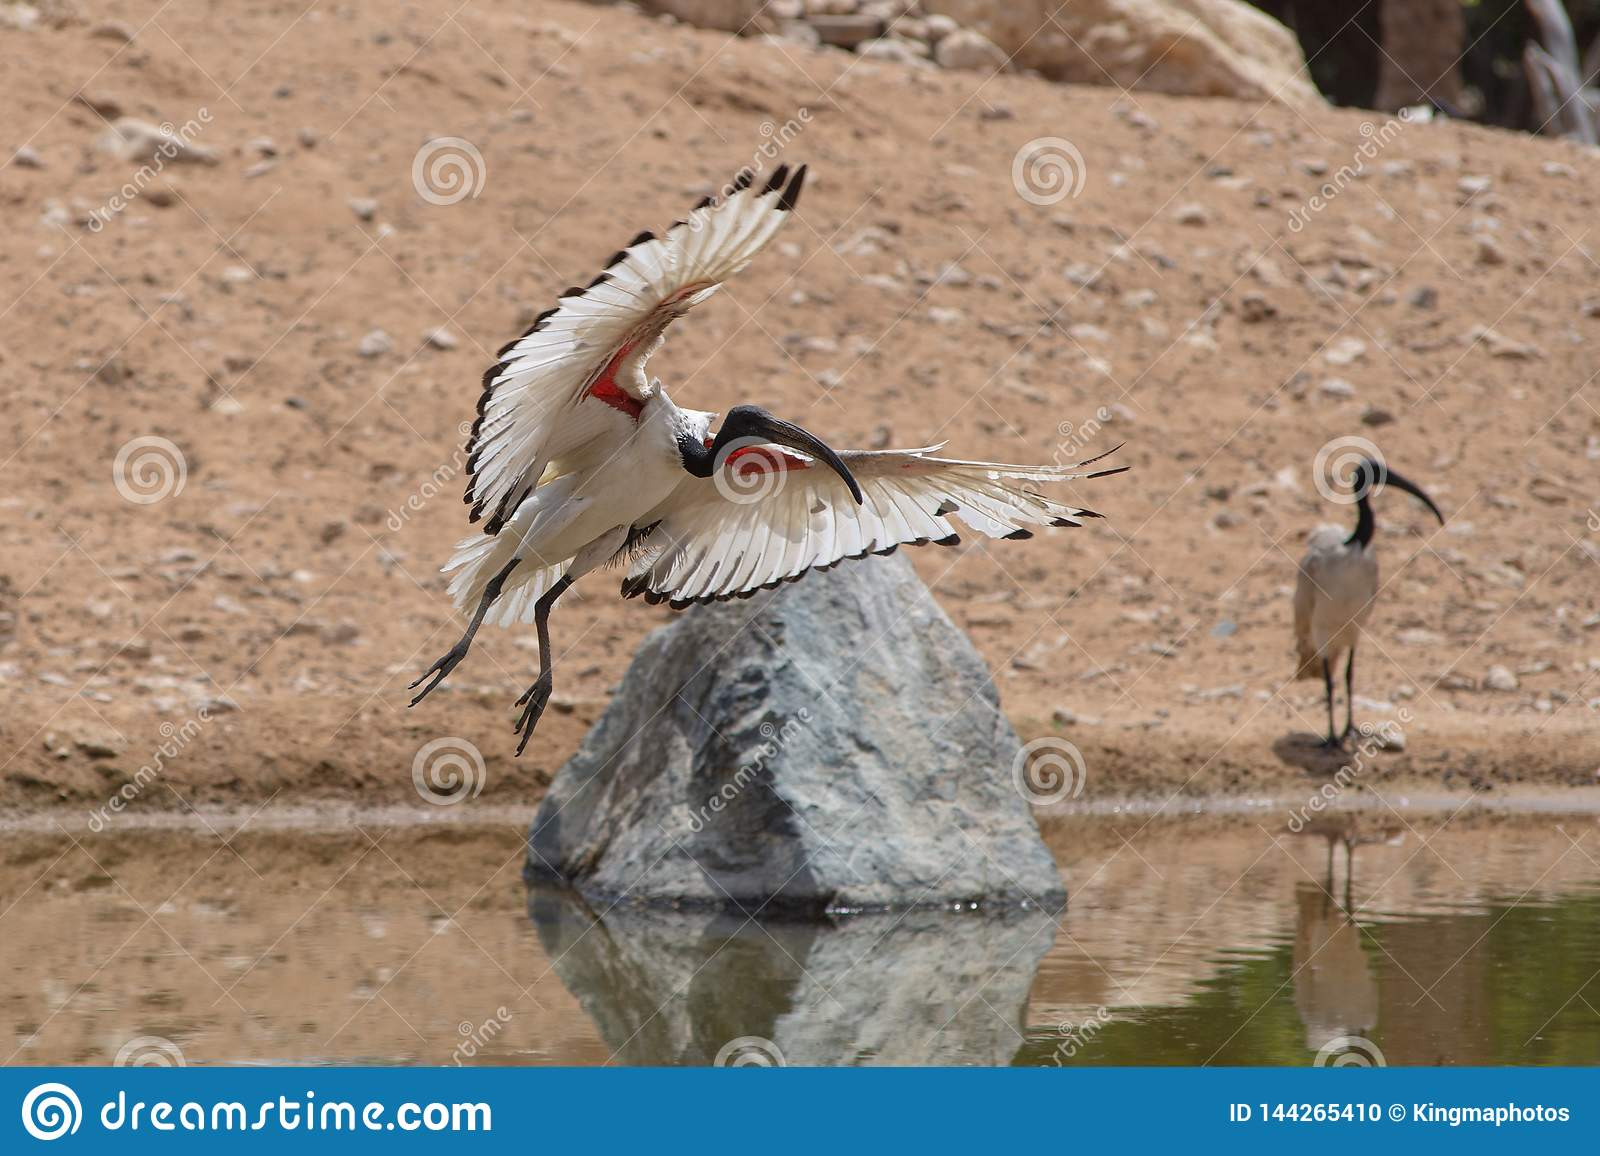 A Sacred Ibis landing showing off its beautiful white and red wings against a sandy background near a pond Threskiornis